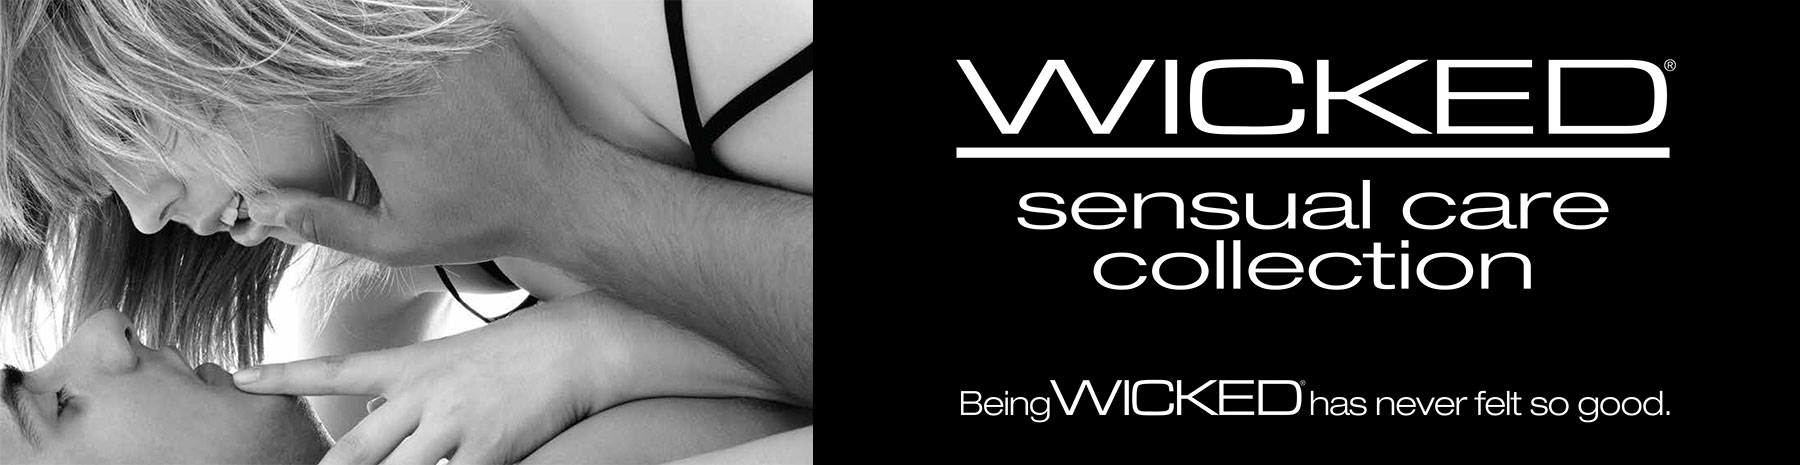 Wicked Sensual Care, Bed Time Toys.jpg